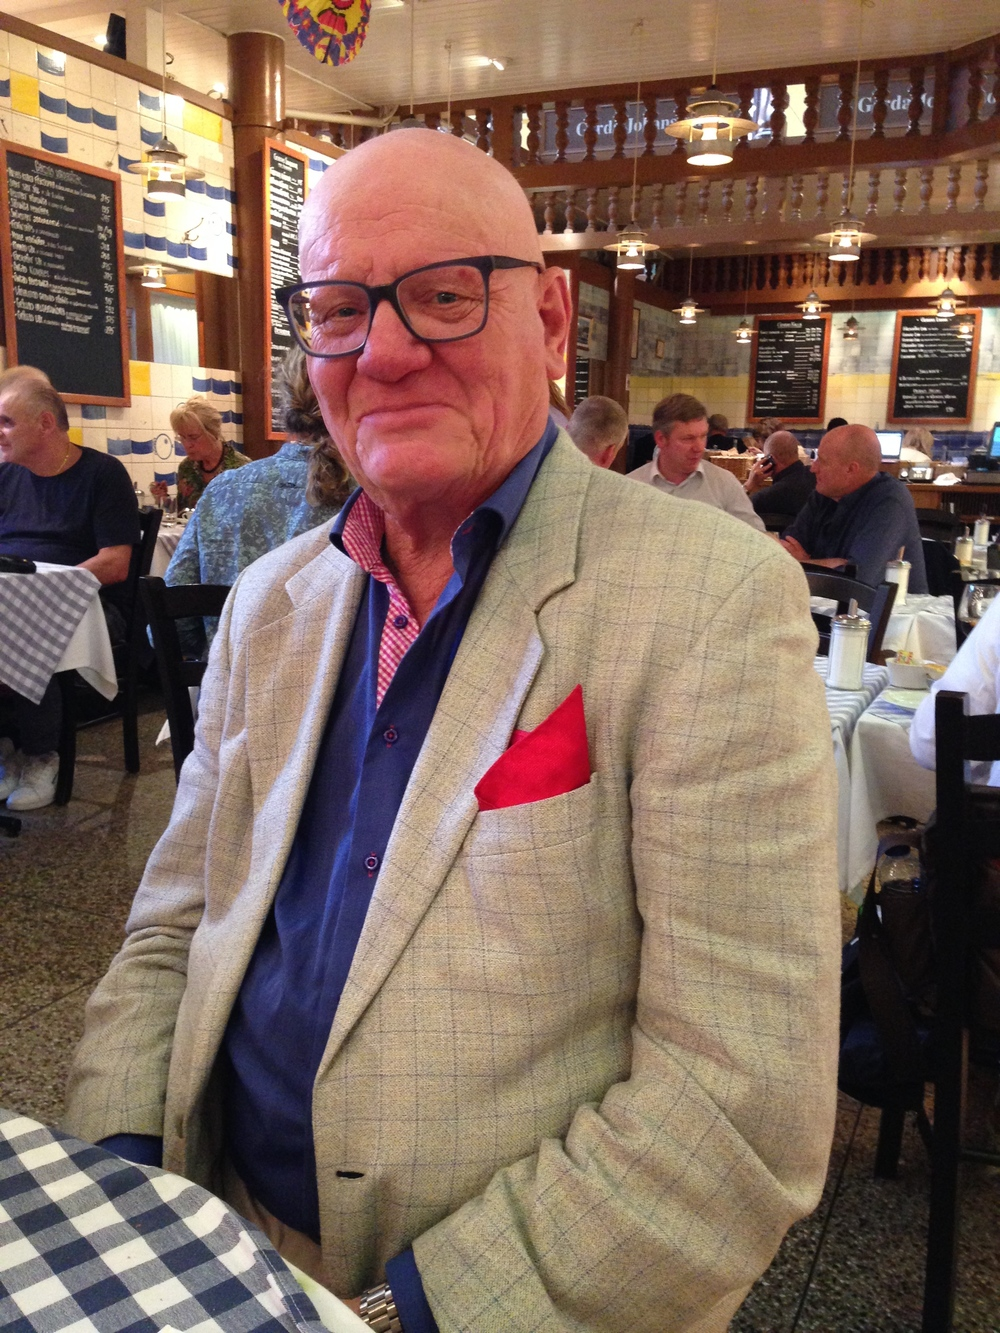 Elegantly dressed gentleman whom we had the pleasure of sharing a table with at the   Östermalms Saluhall (local Food Market).